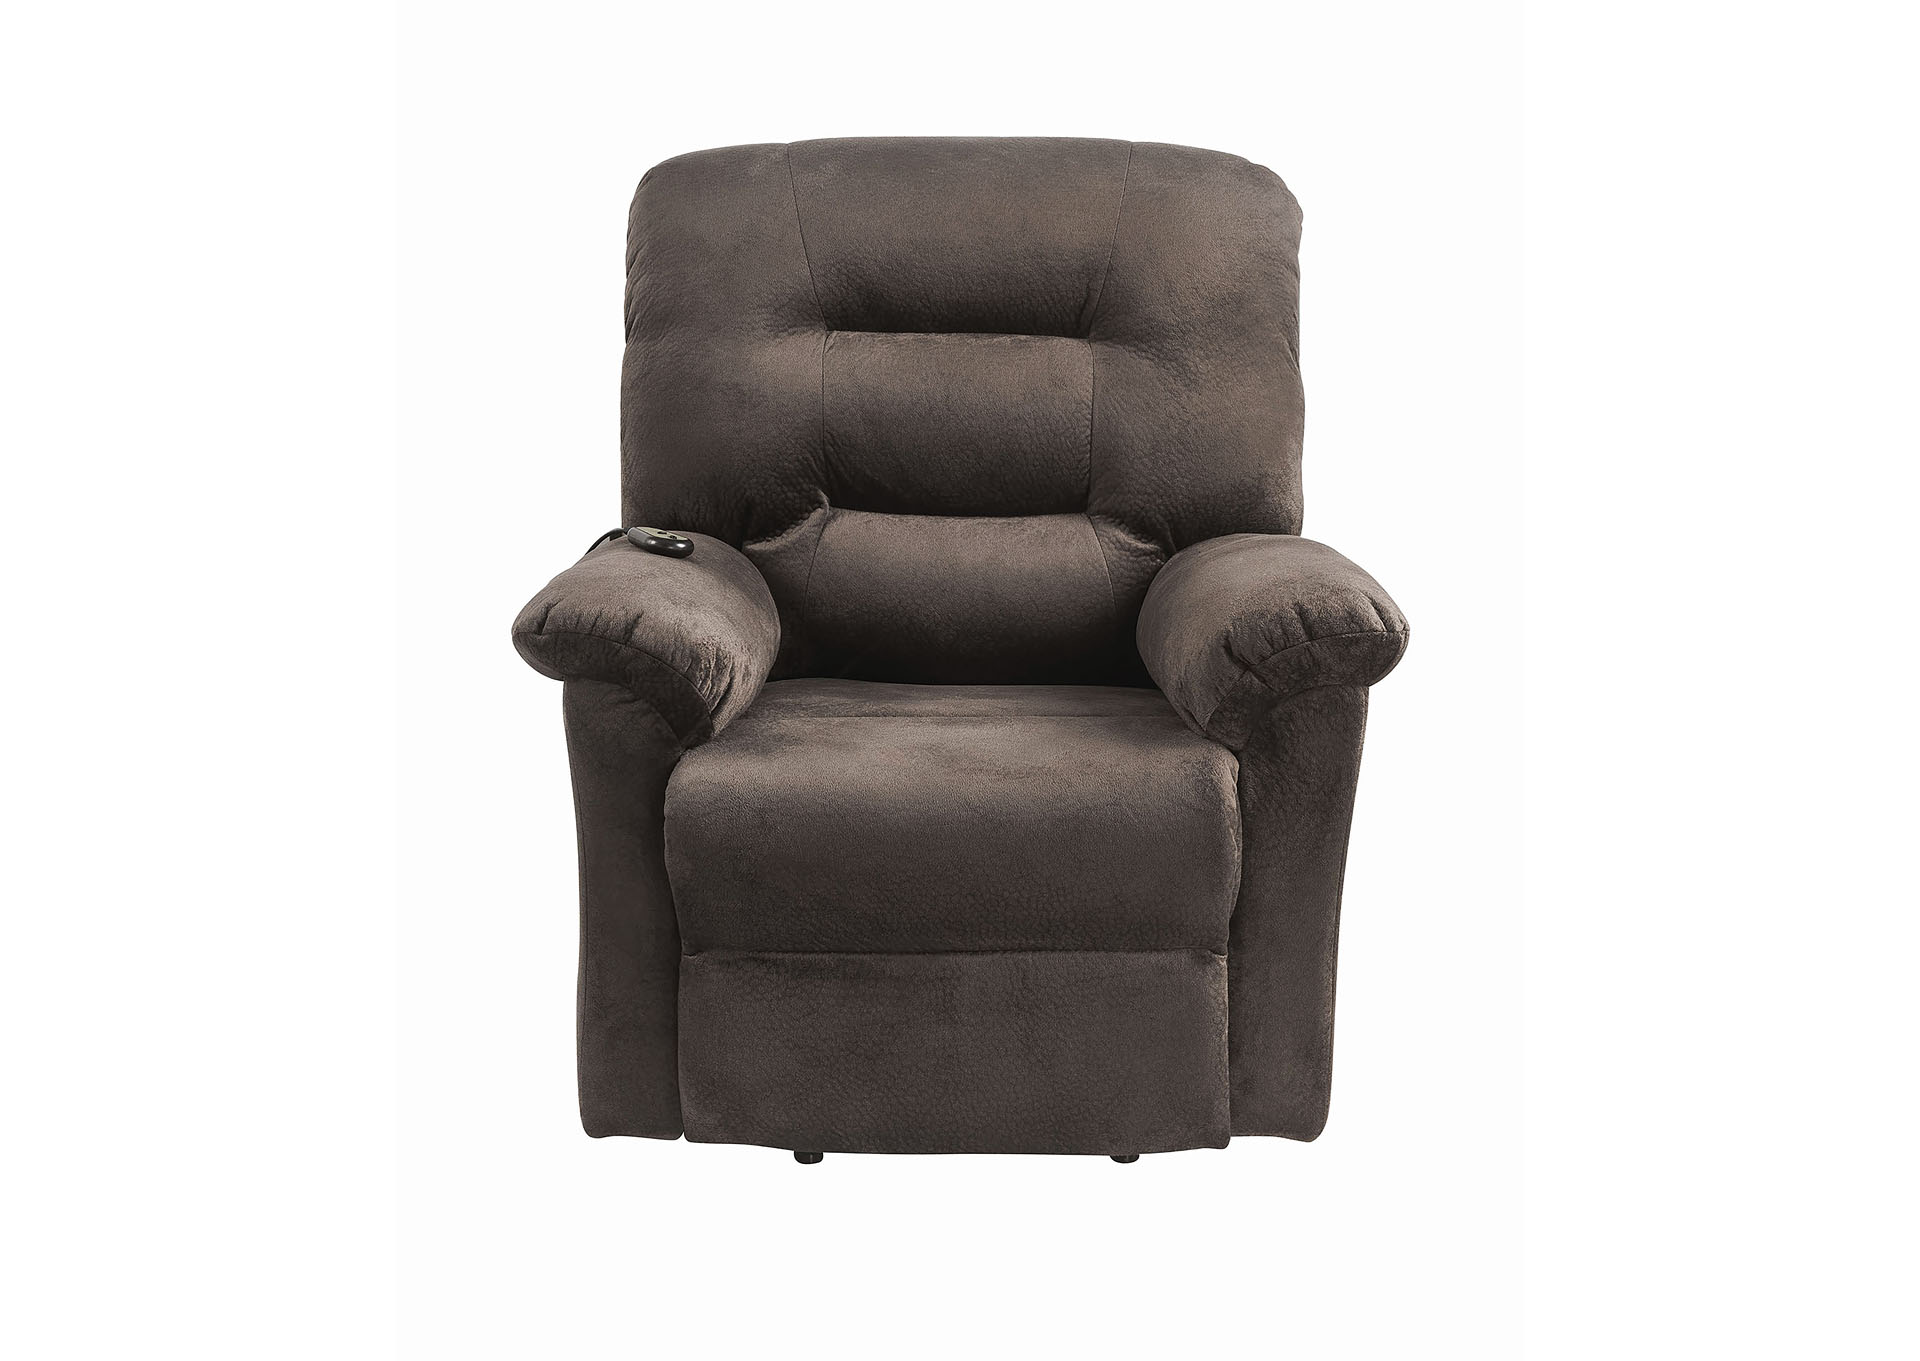 Power Lift Recliner,Coaster Furniture